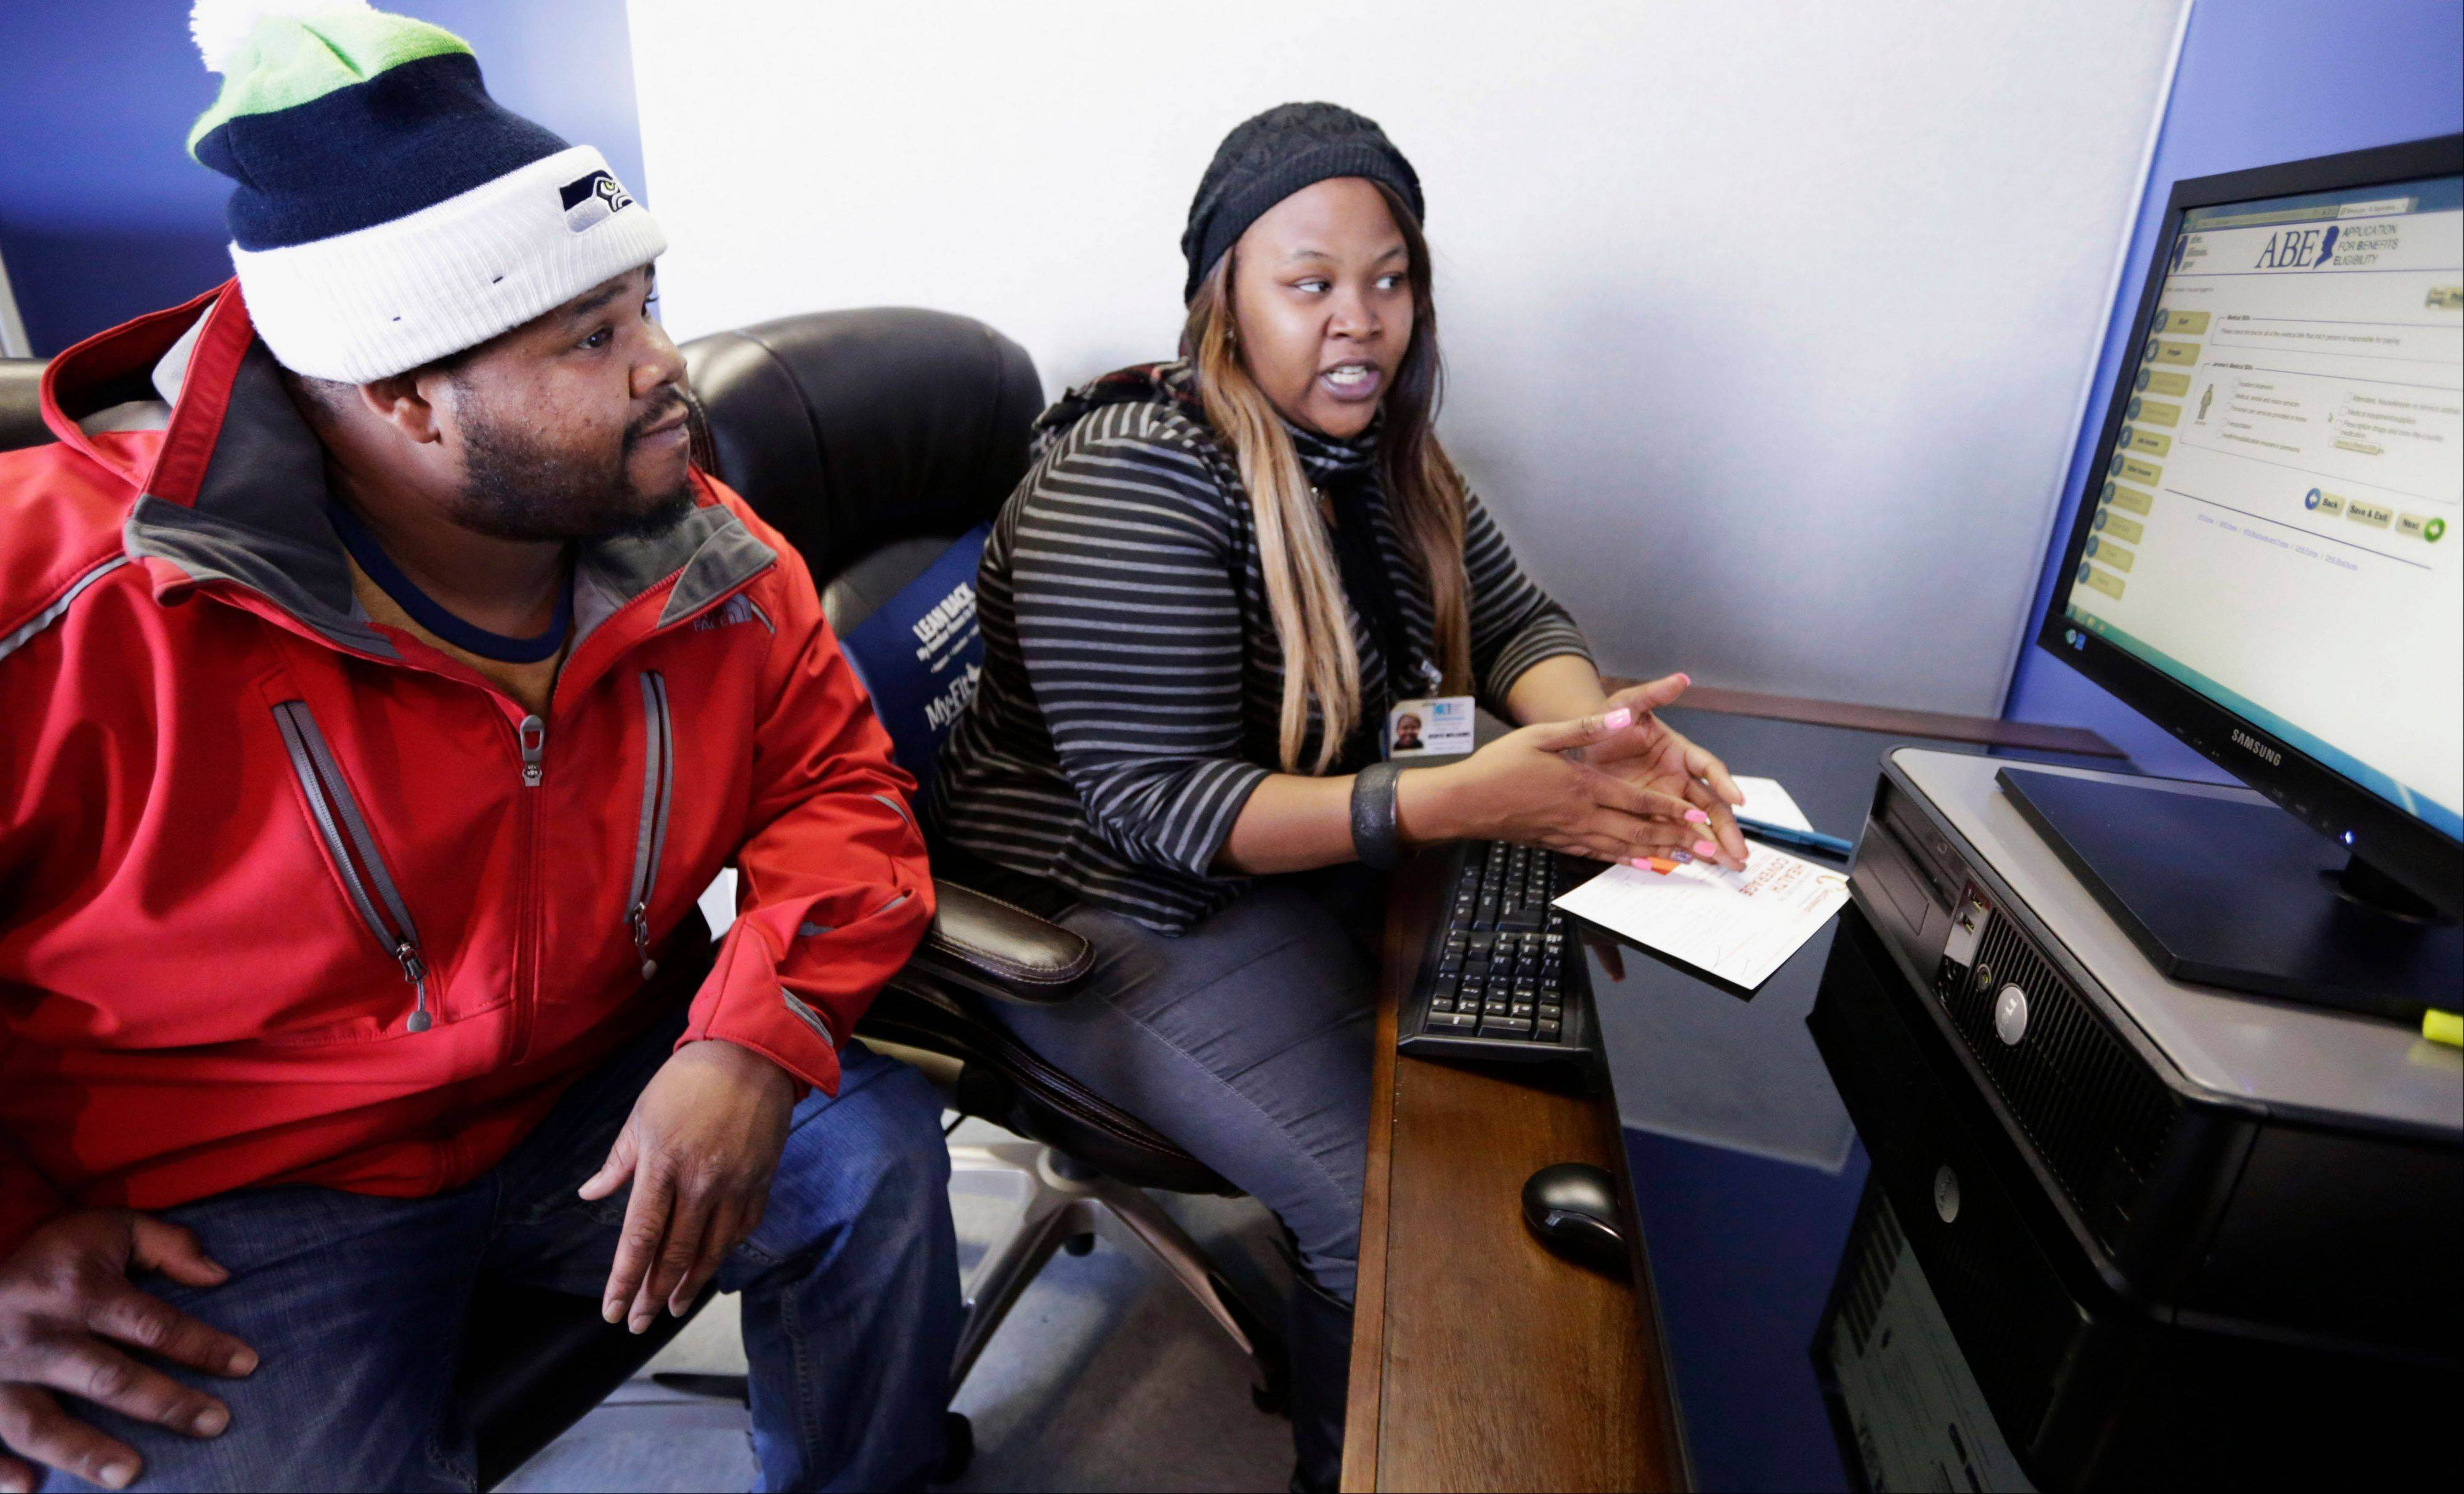 Enrollment counselor Kenya Williams helps Jerome Davis Jr. 36, sign up for Medicaid last week at the Westside Health Authority in Chicago. For Davis, an unemployed construction worker, expansion of Medicaid means he�ll be able to see a doctor without fear of medical bills he can�t pay.